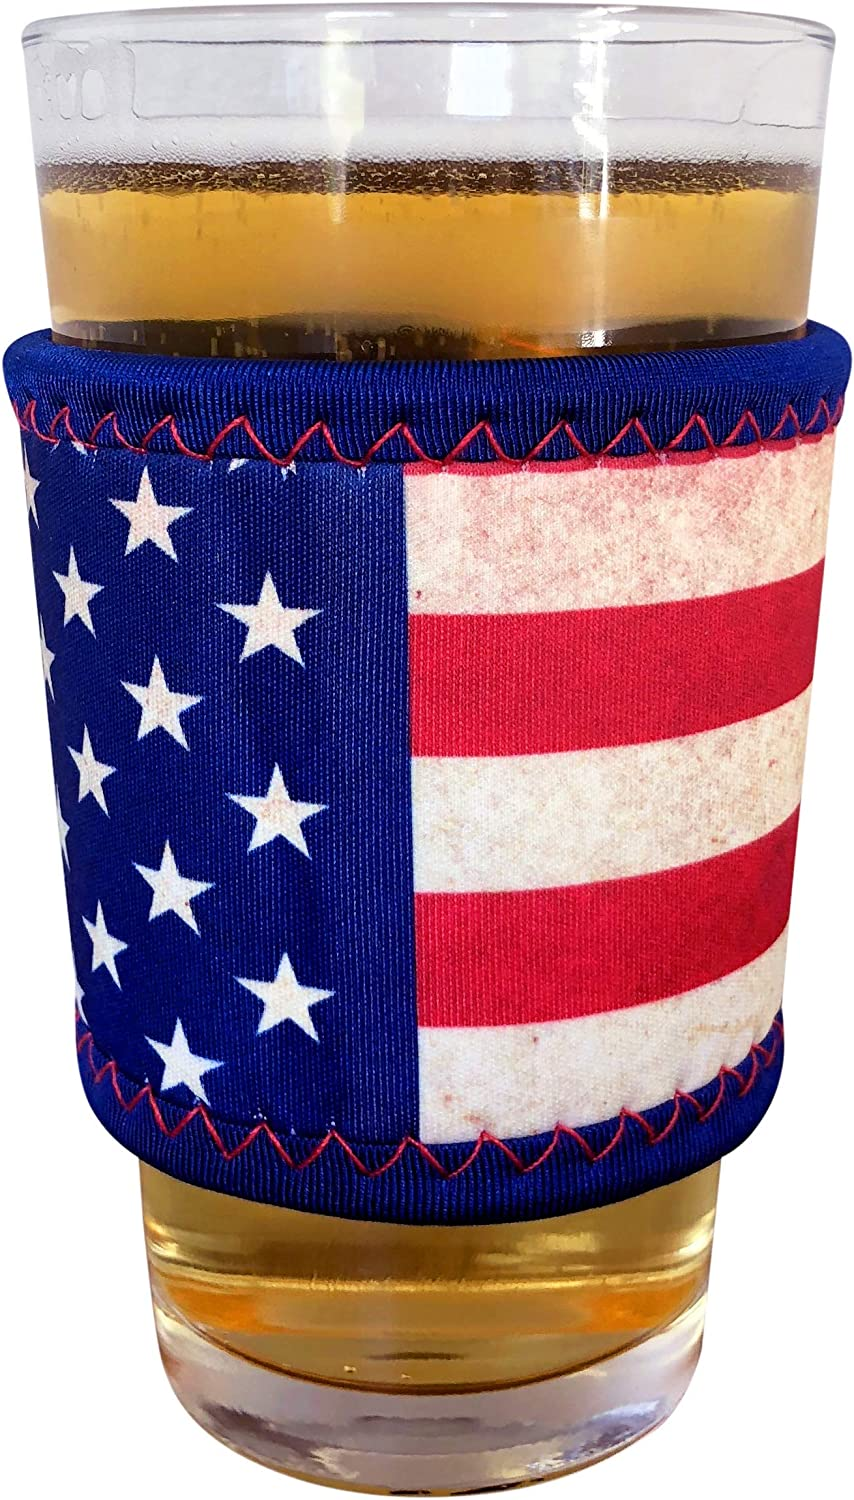 Koverz Neoprene Coffee Sleeve, Cup Grip, Drink Holder, Pint Sleeve - American Flag